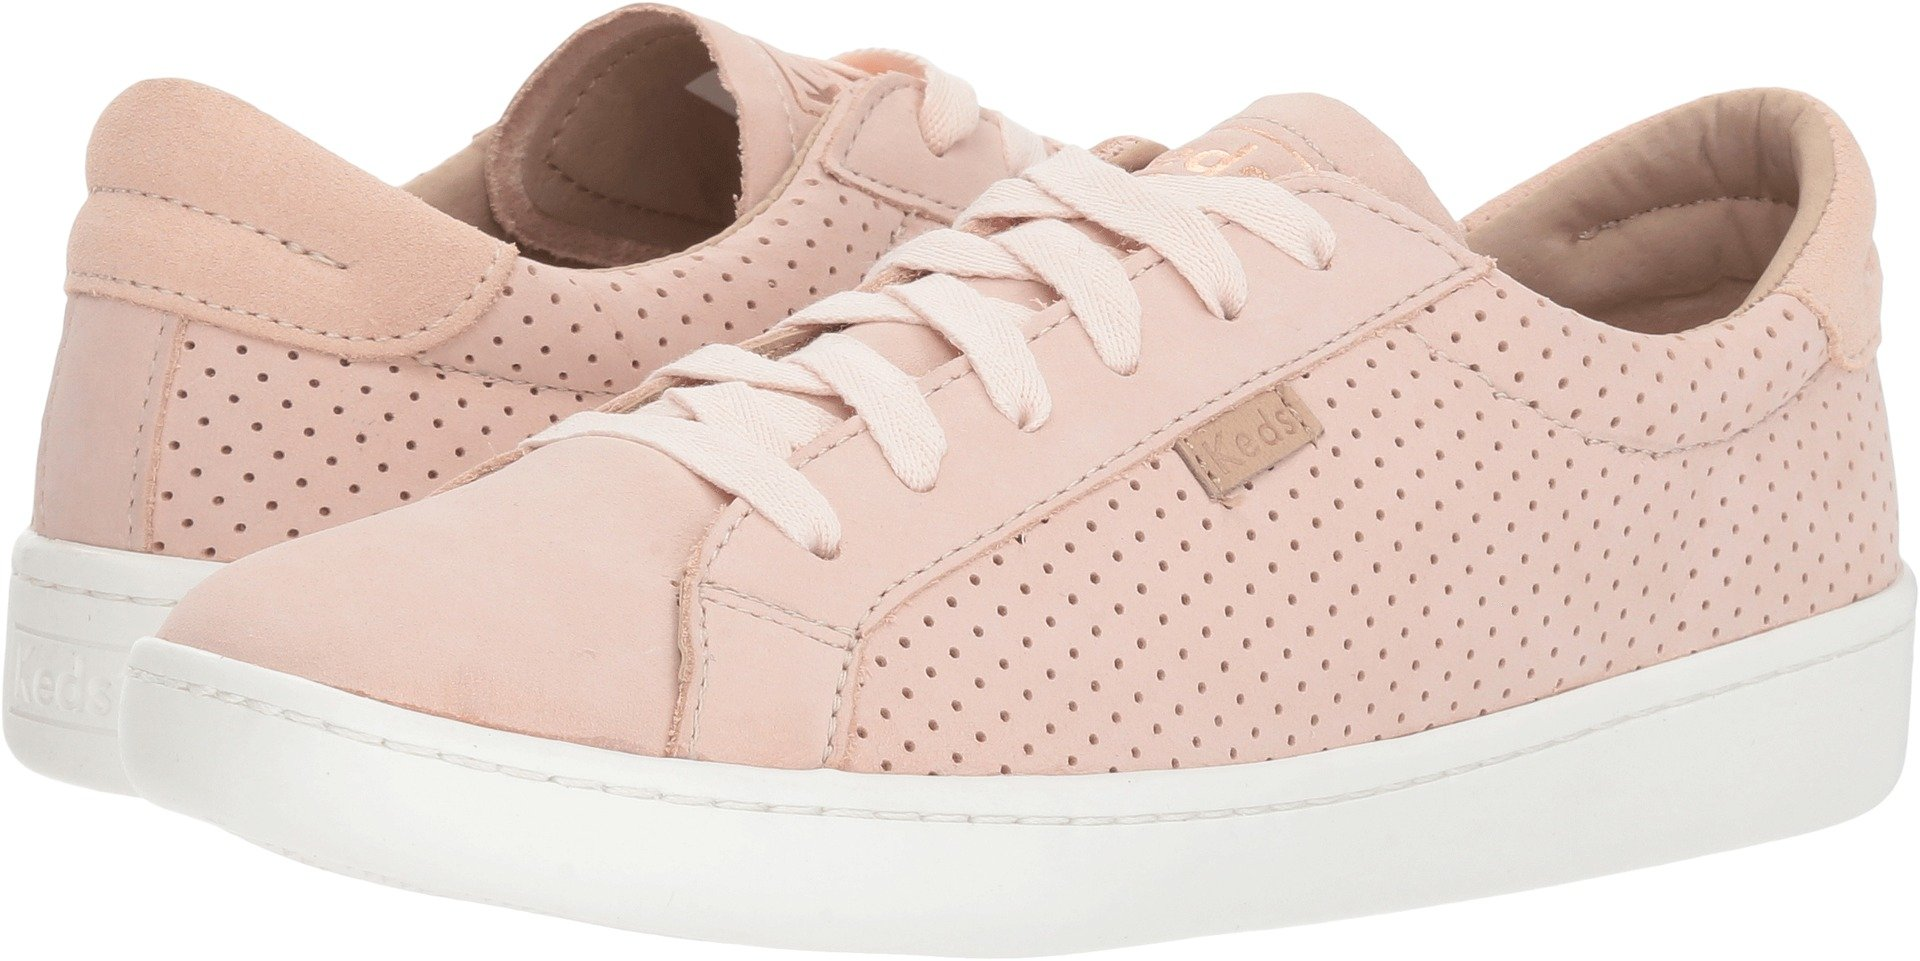 Keds Women's X Design Love Fest Ace Perf Leather Blush 8.5 B US